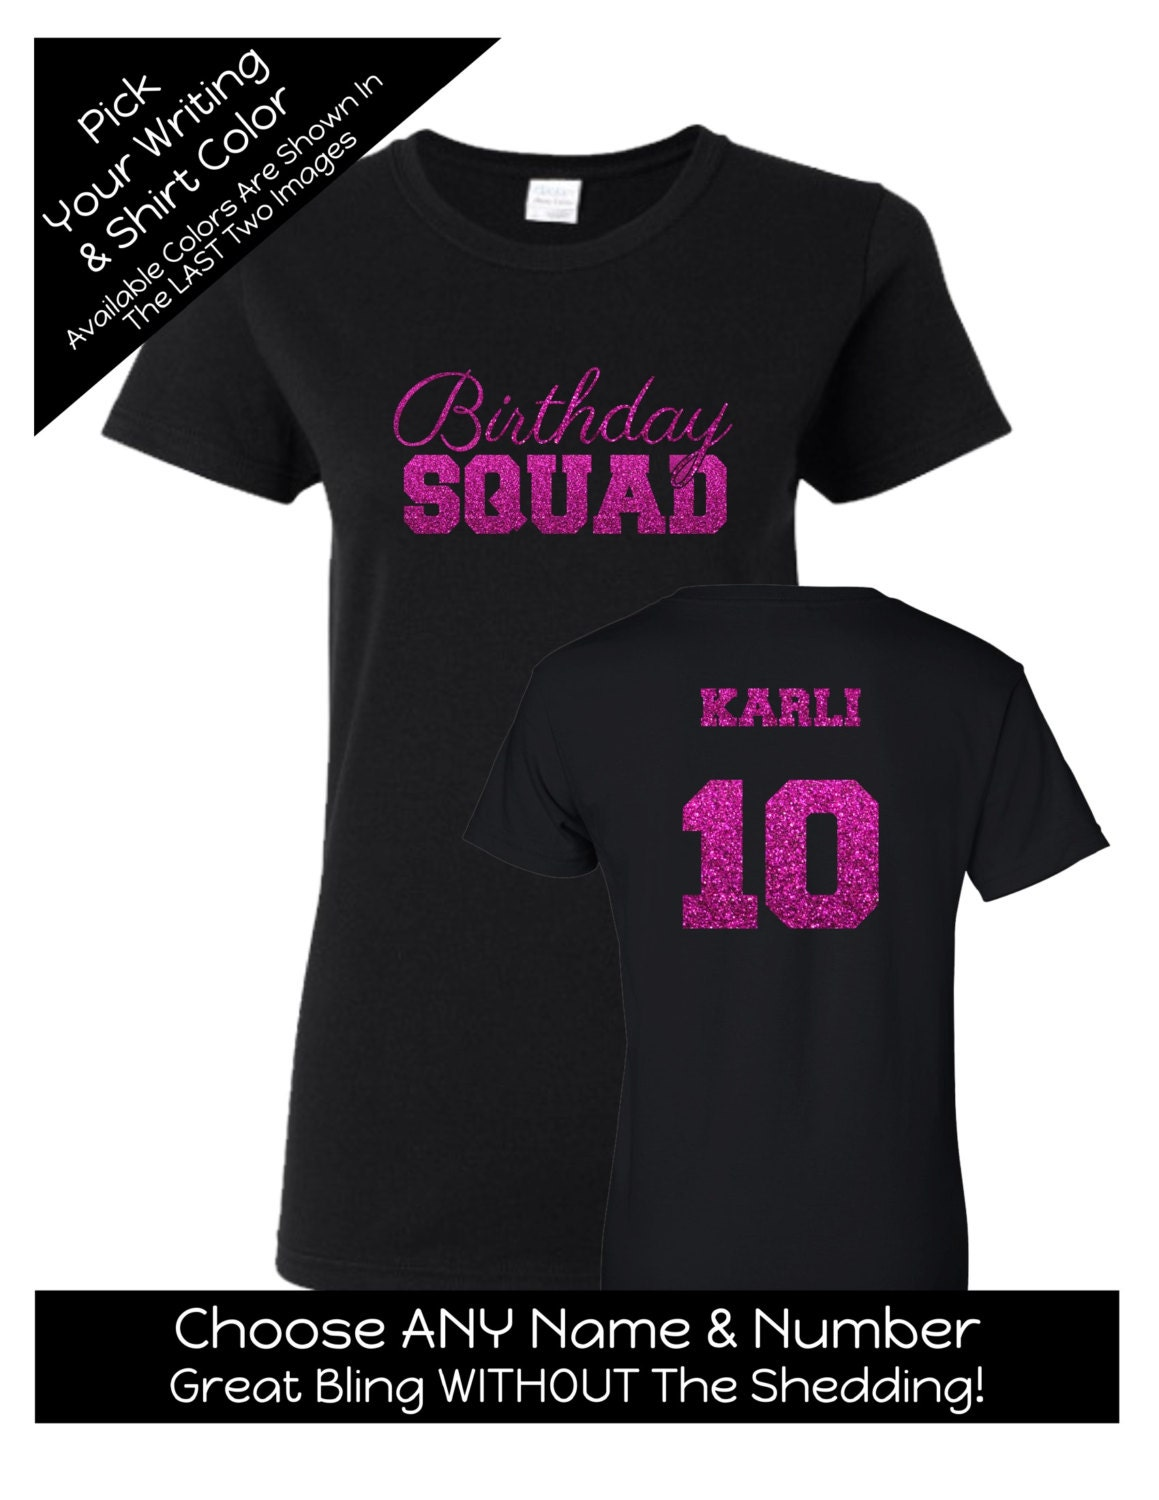 T shirt design quad cities - Birthday Squad Shirt With Script Writing Personalize The Name Age And Colors Birthday Party Matching Shirts